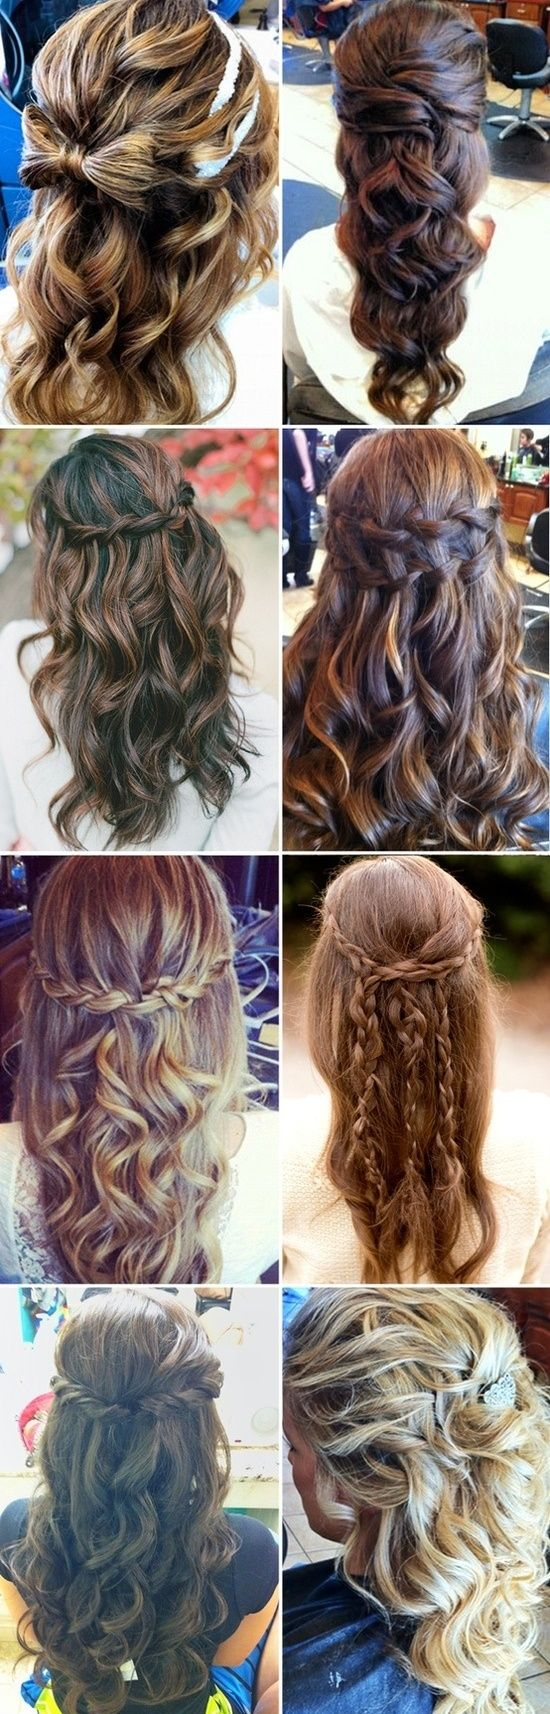 Hey girls! So the wedding season is here in full swing with a lot of weddings scheduled. Here are some of the best hairstyles for Indian women for you to choose